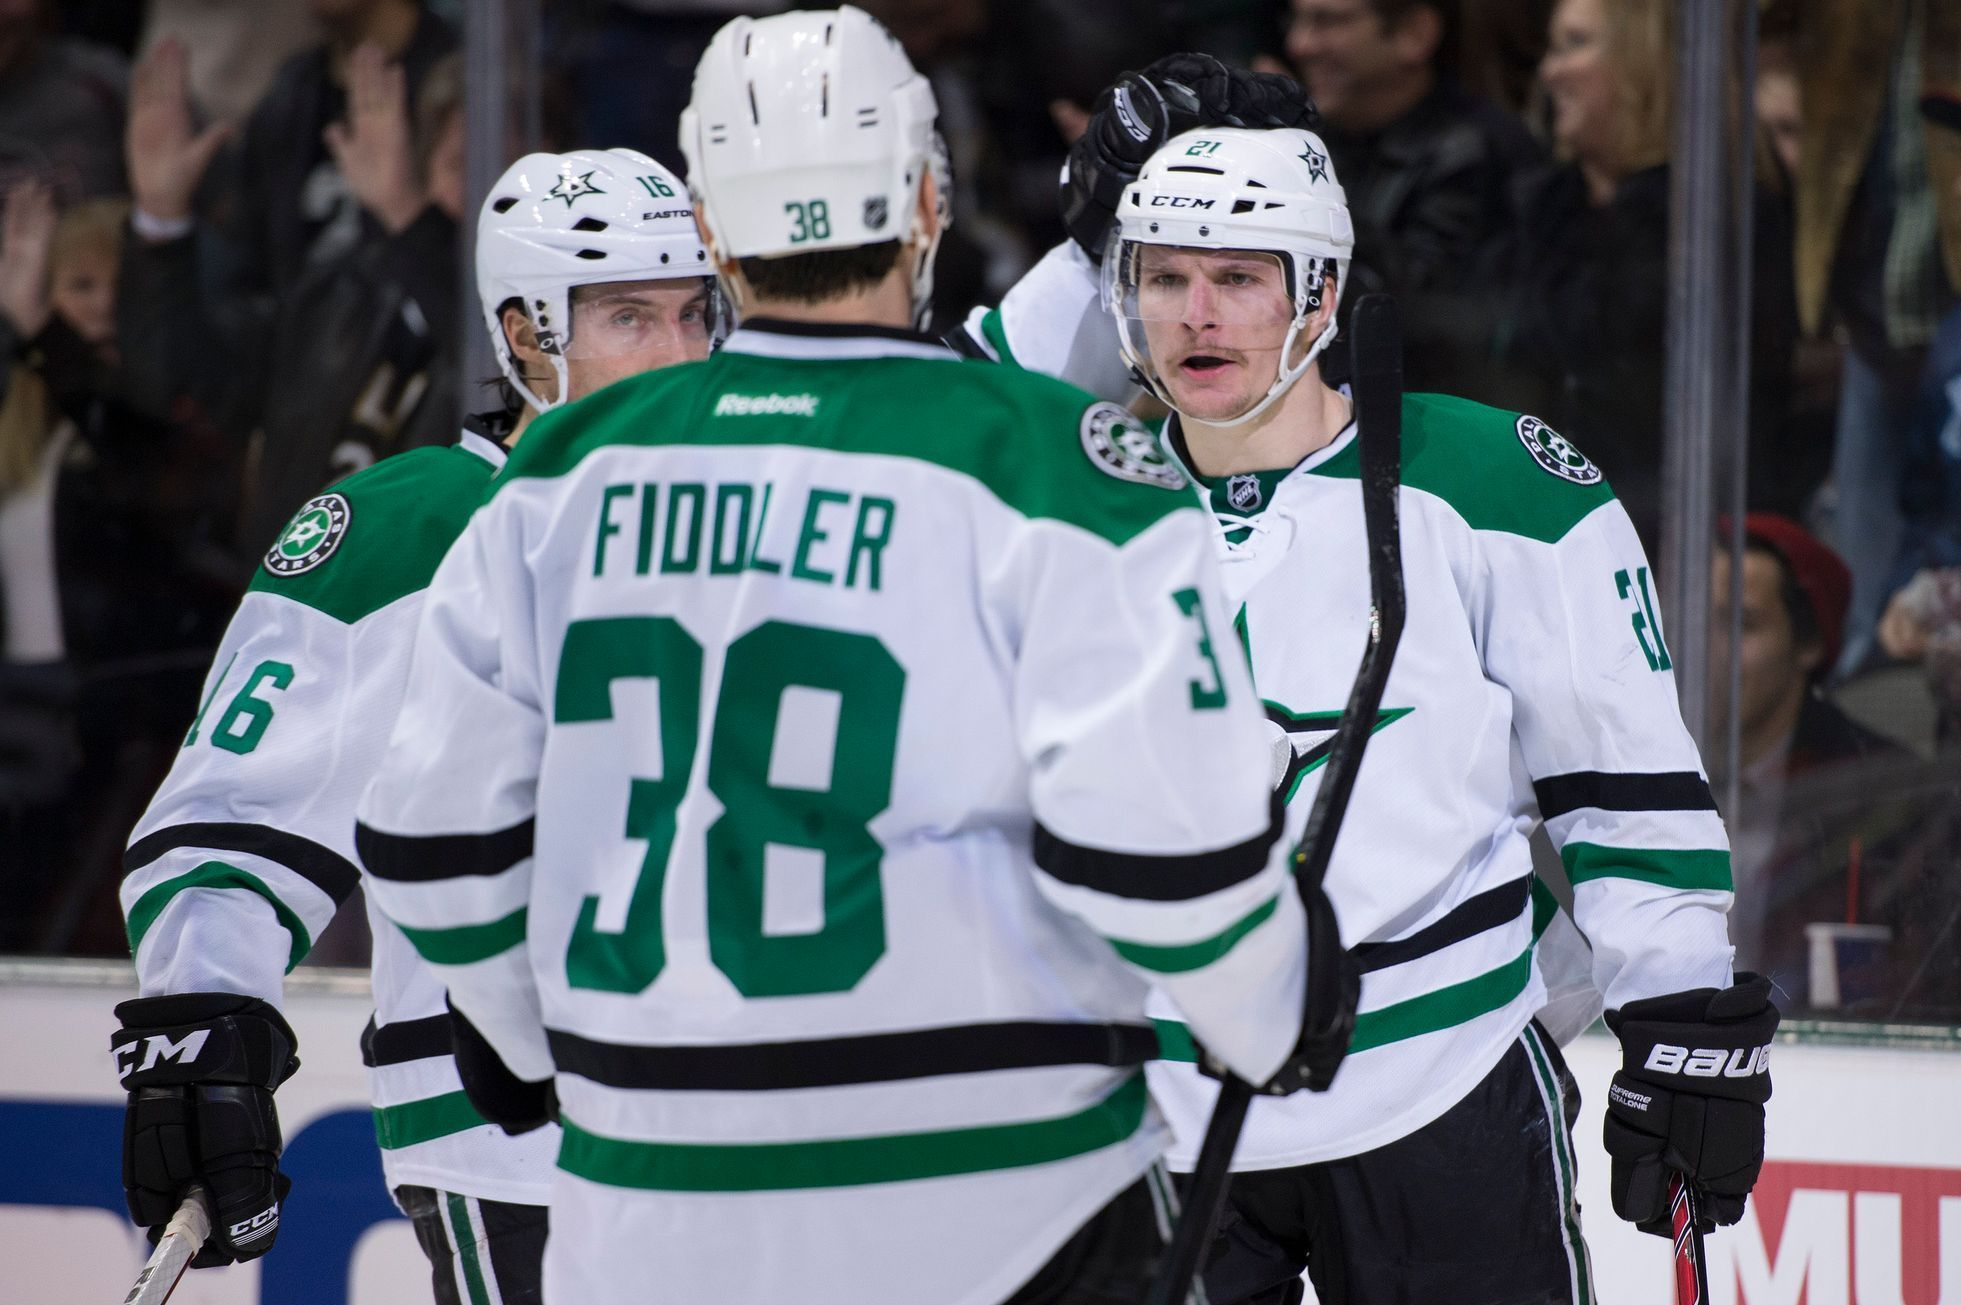 NHL: Anaheim Ducks at Dallas Stars (Roussel, Garbutt a Fiddler)